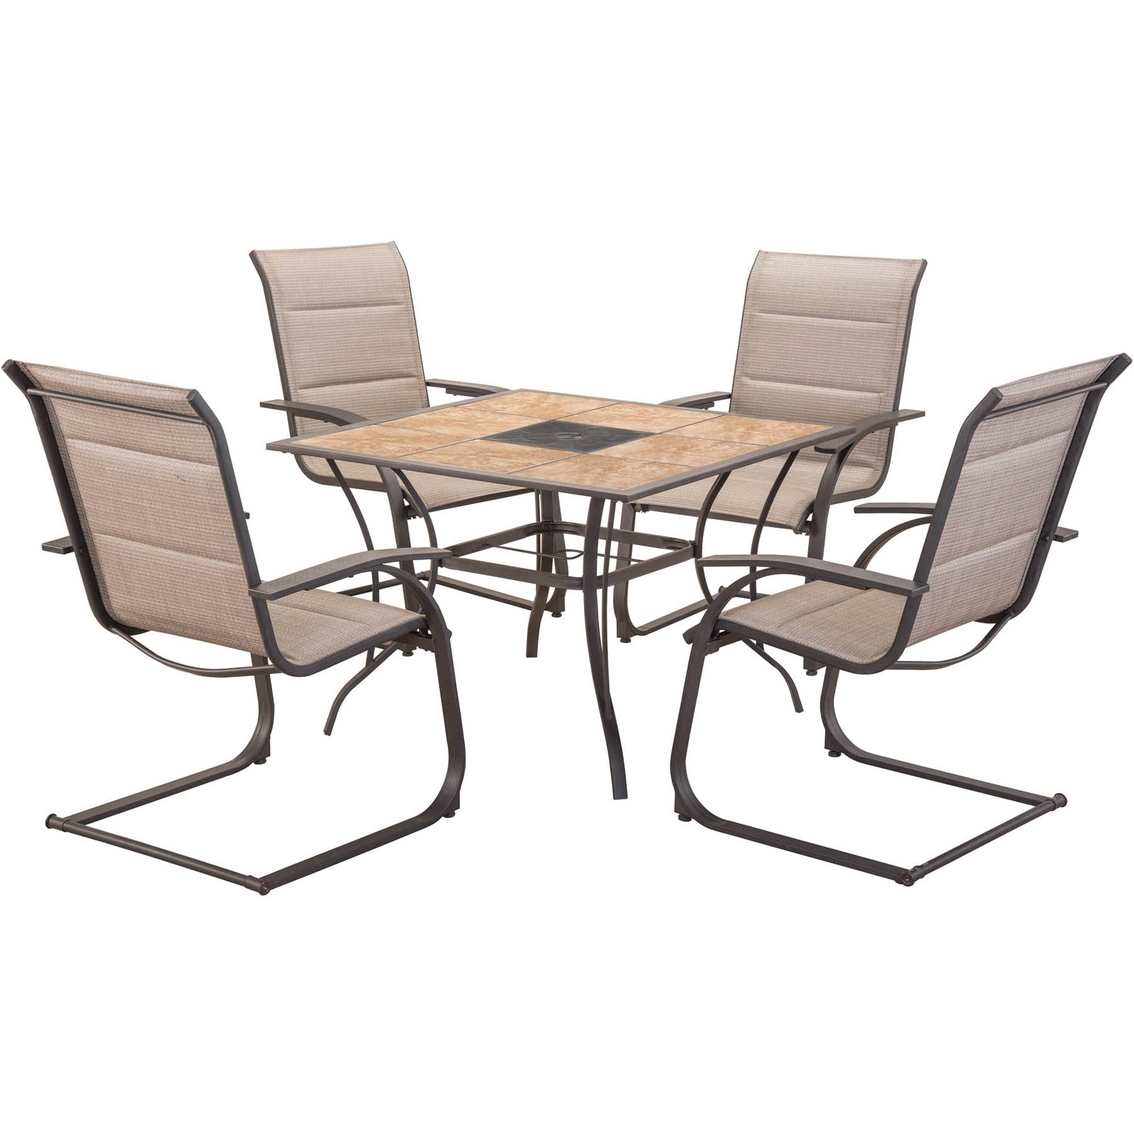 Courtyard Creations Water Edge 5 Pc. Dining Set